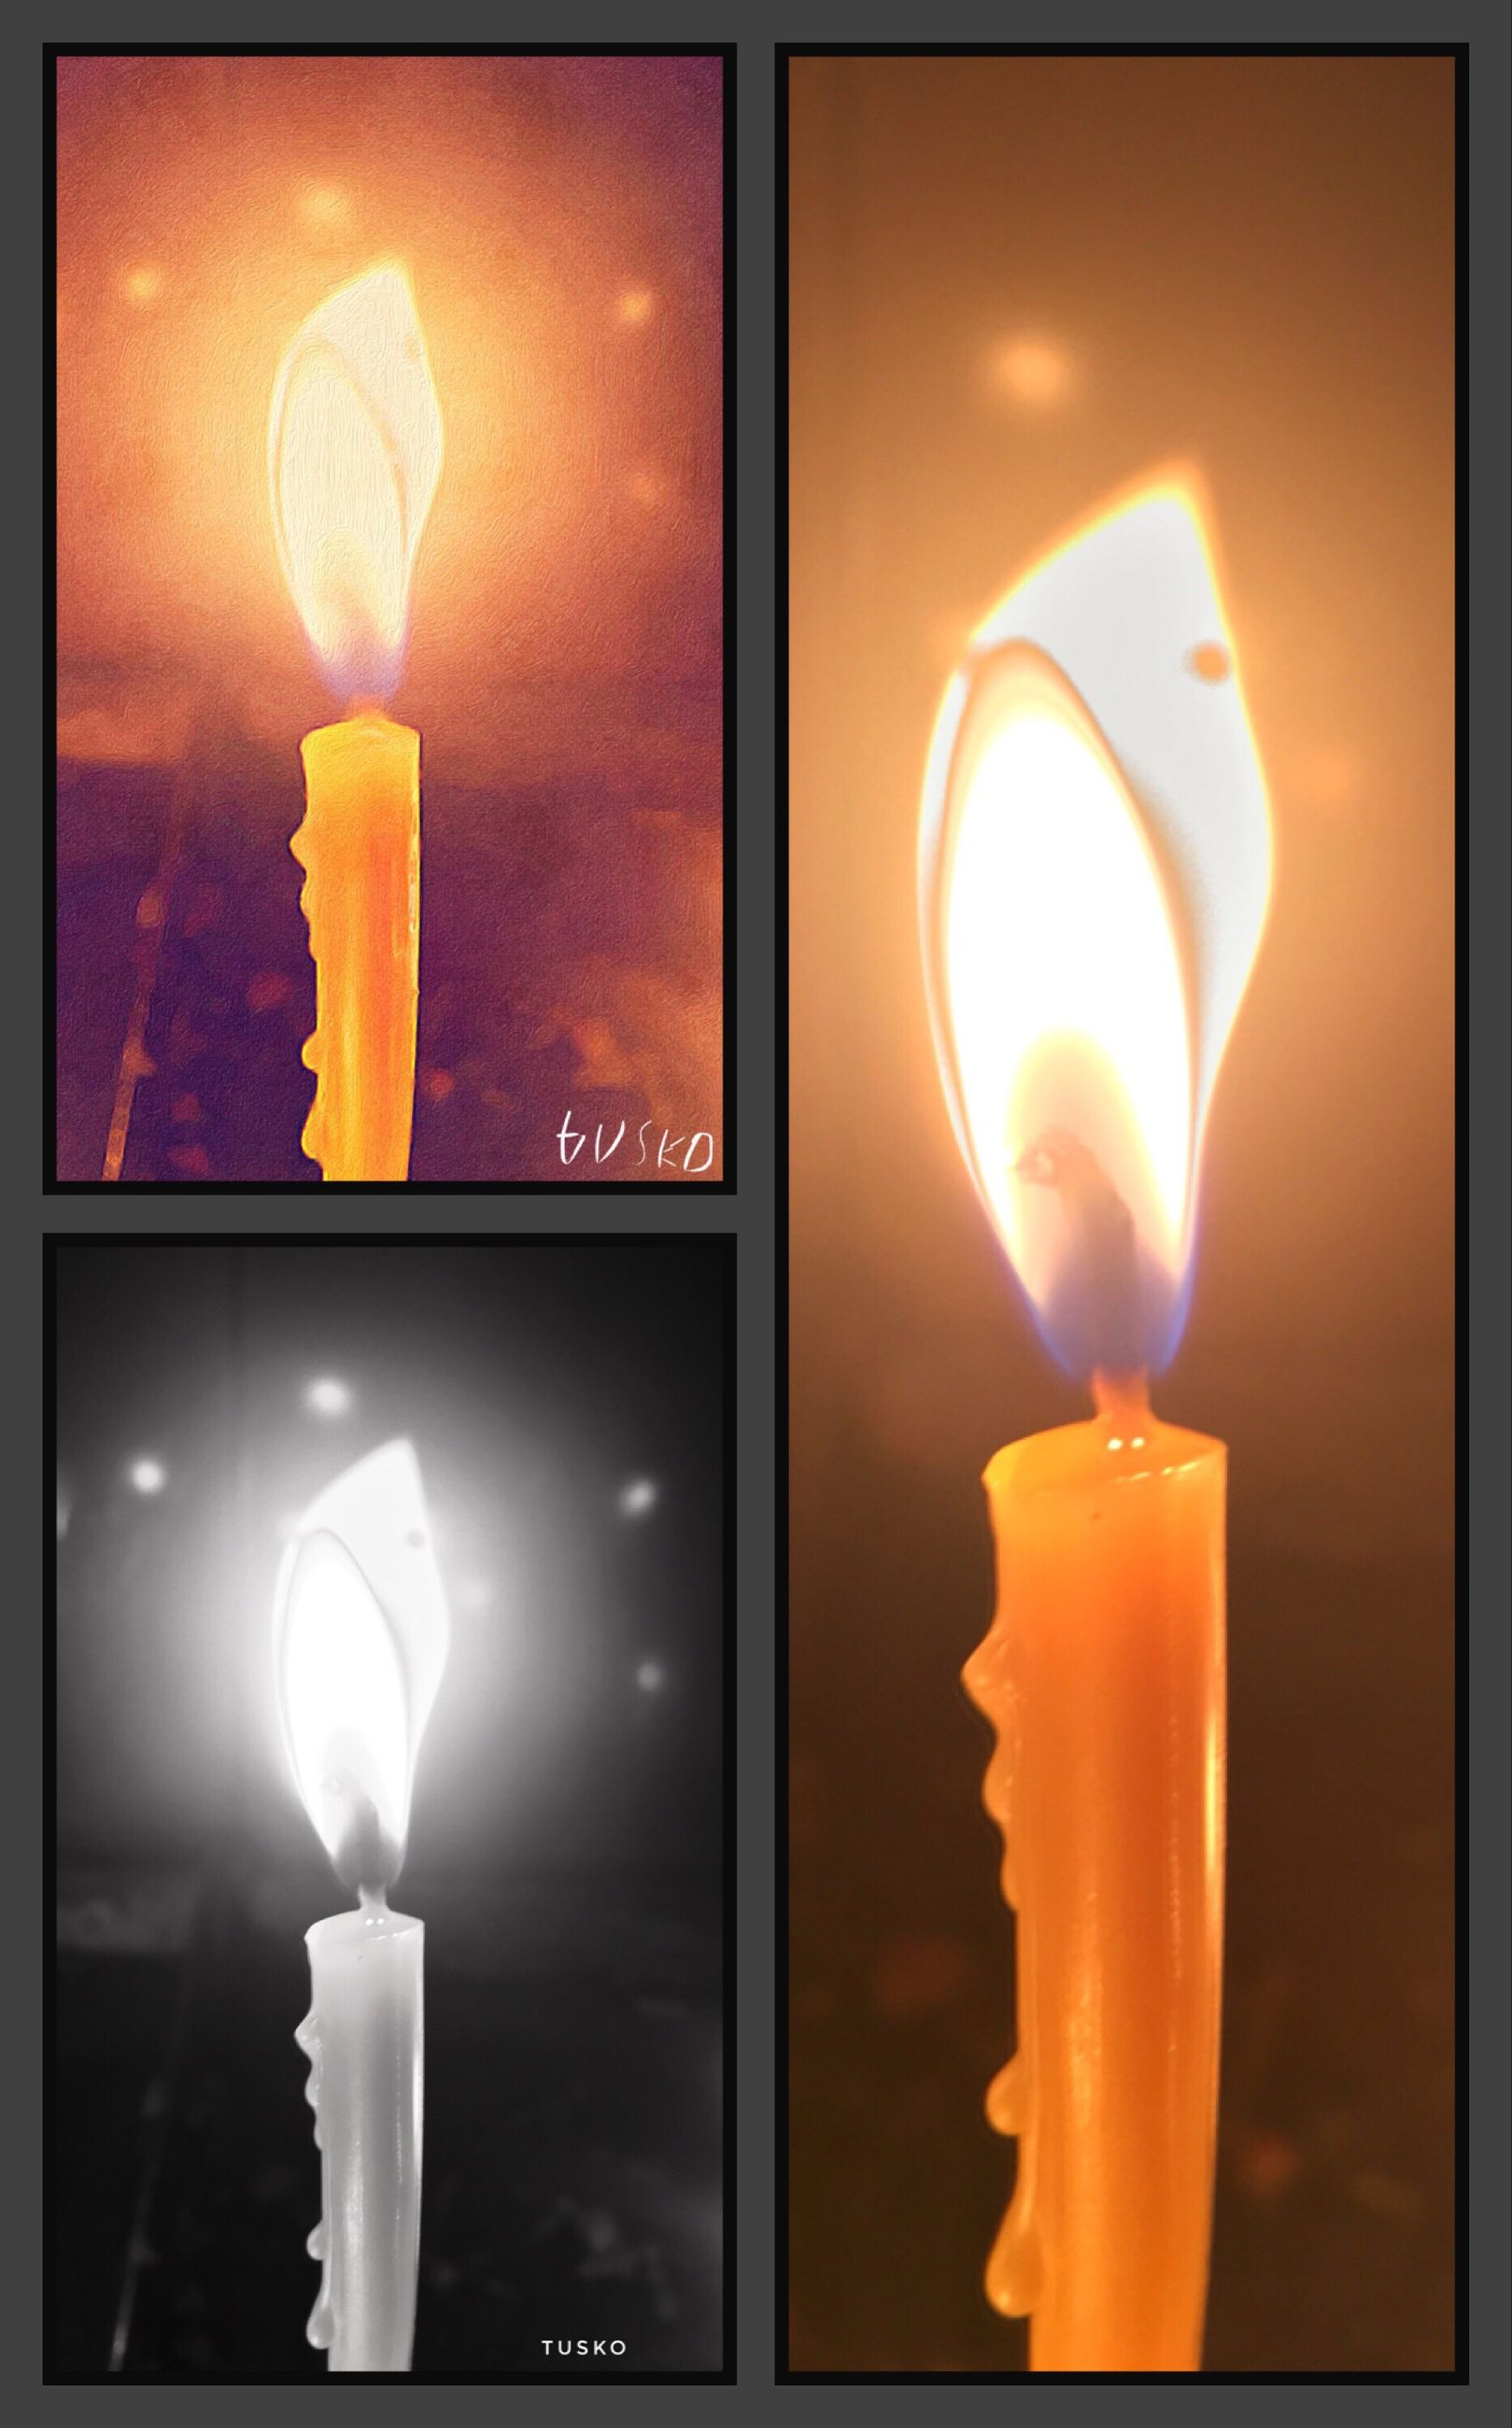 illuminated, lighting equipment, glowing, indoors, auto post production filter, candle, close-up, reflection, burning, flame, fire - natural phenomenon, tea light, electric light, multi colored, lit, collage, candlelight